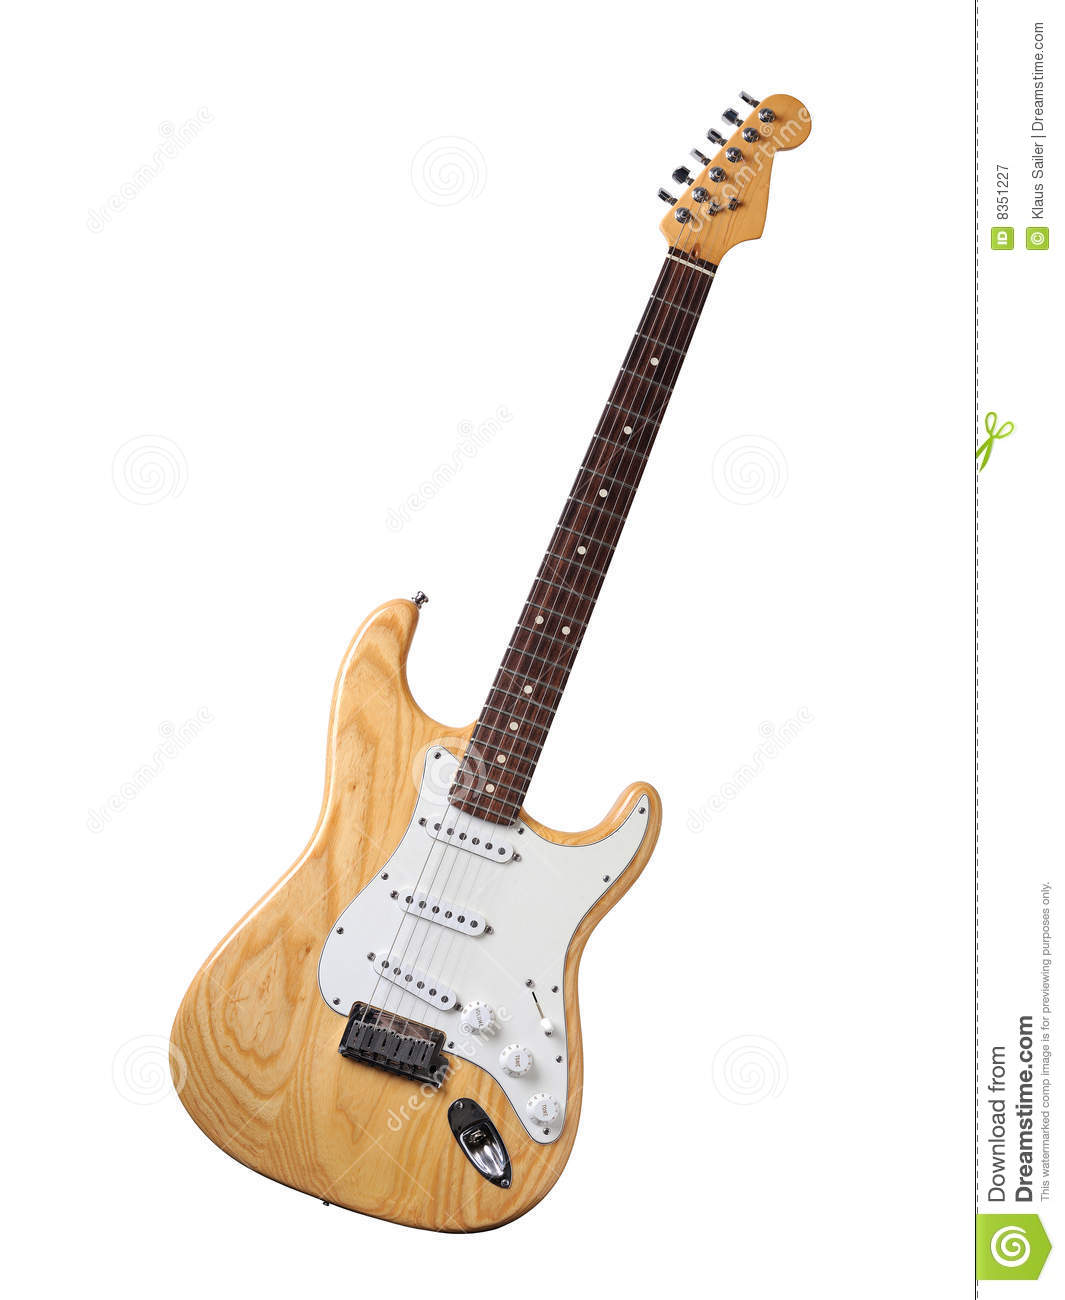 electric guitar wood finish stock image image of guitar studio 8351227. Black Bedroom Furniture Sets. Home Design Ideas